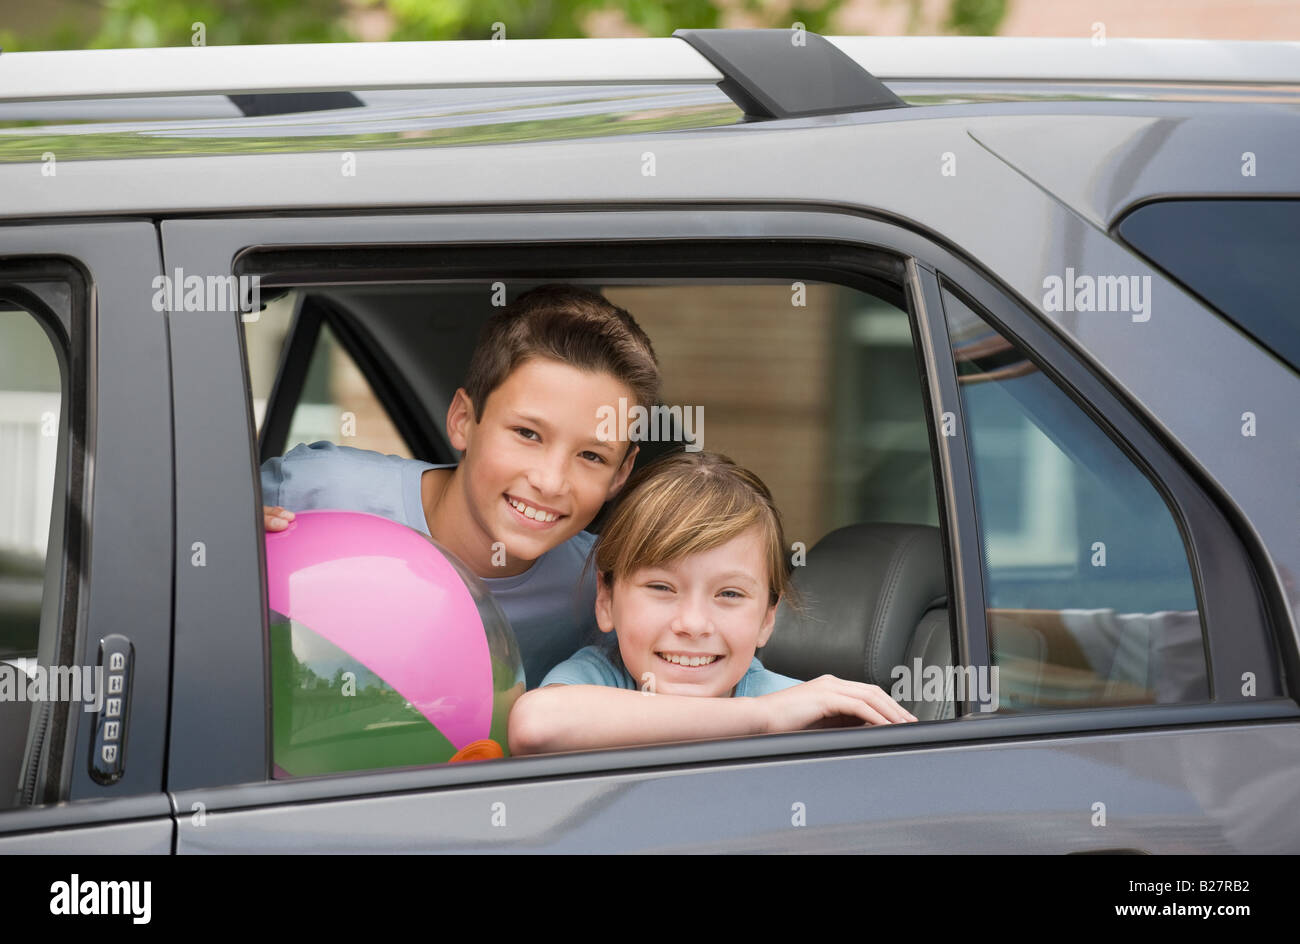 brother and sister looking out car window stock photo